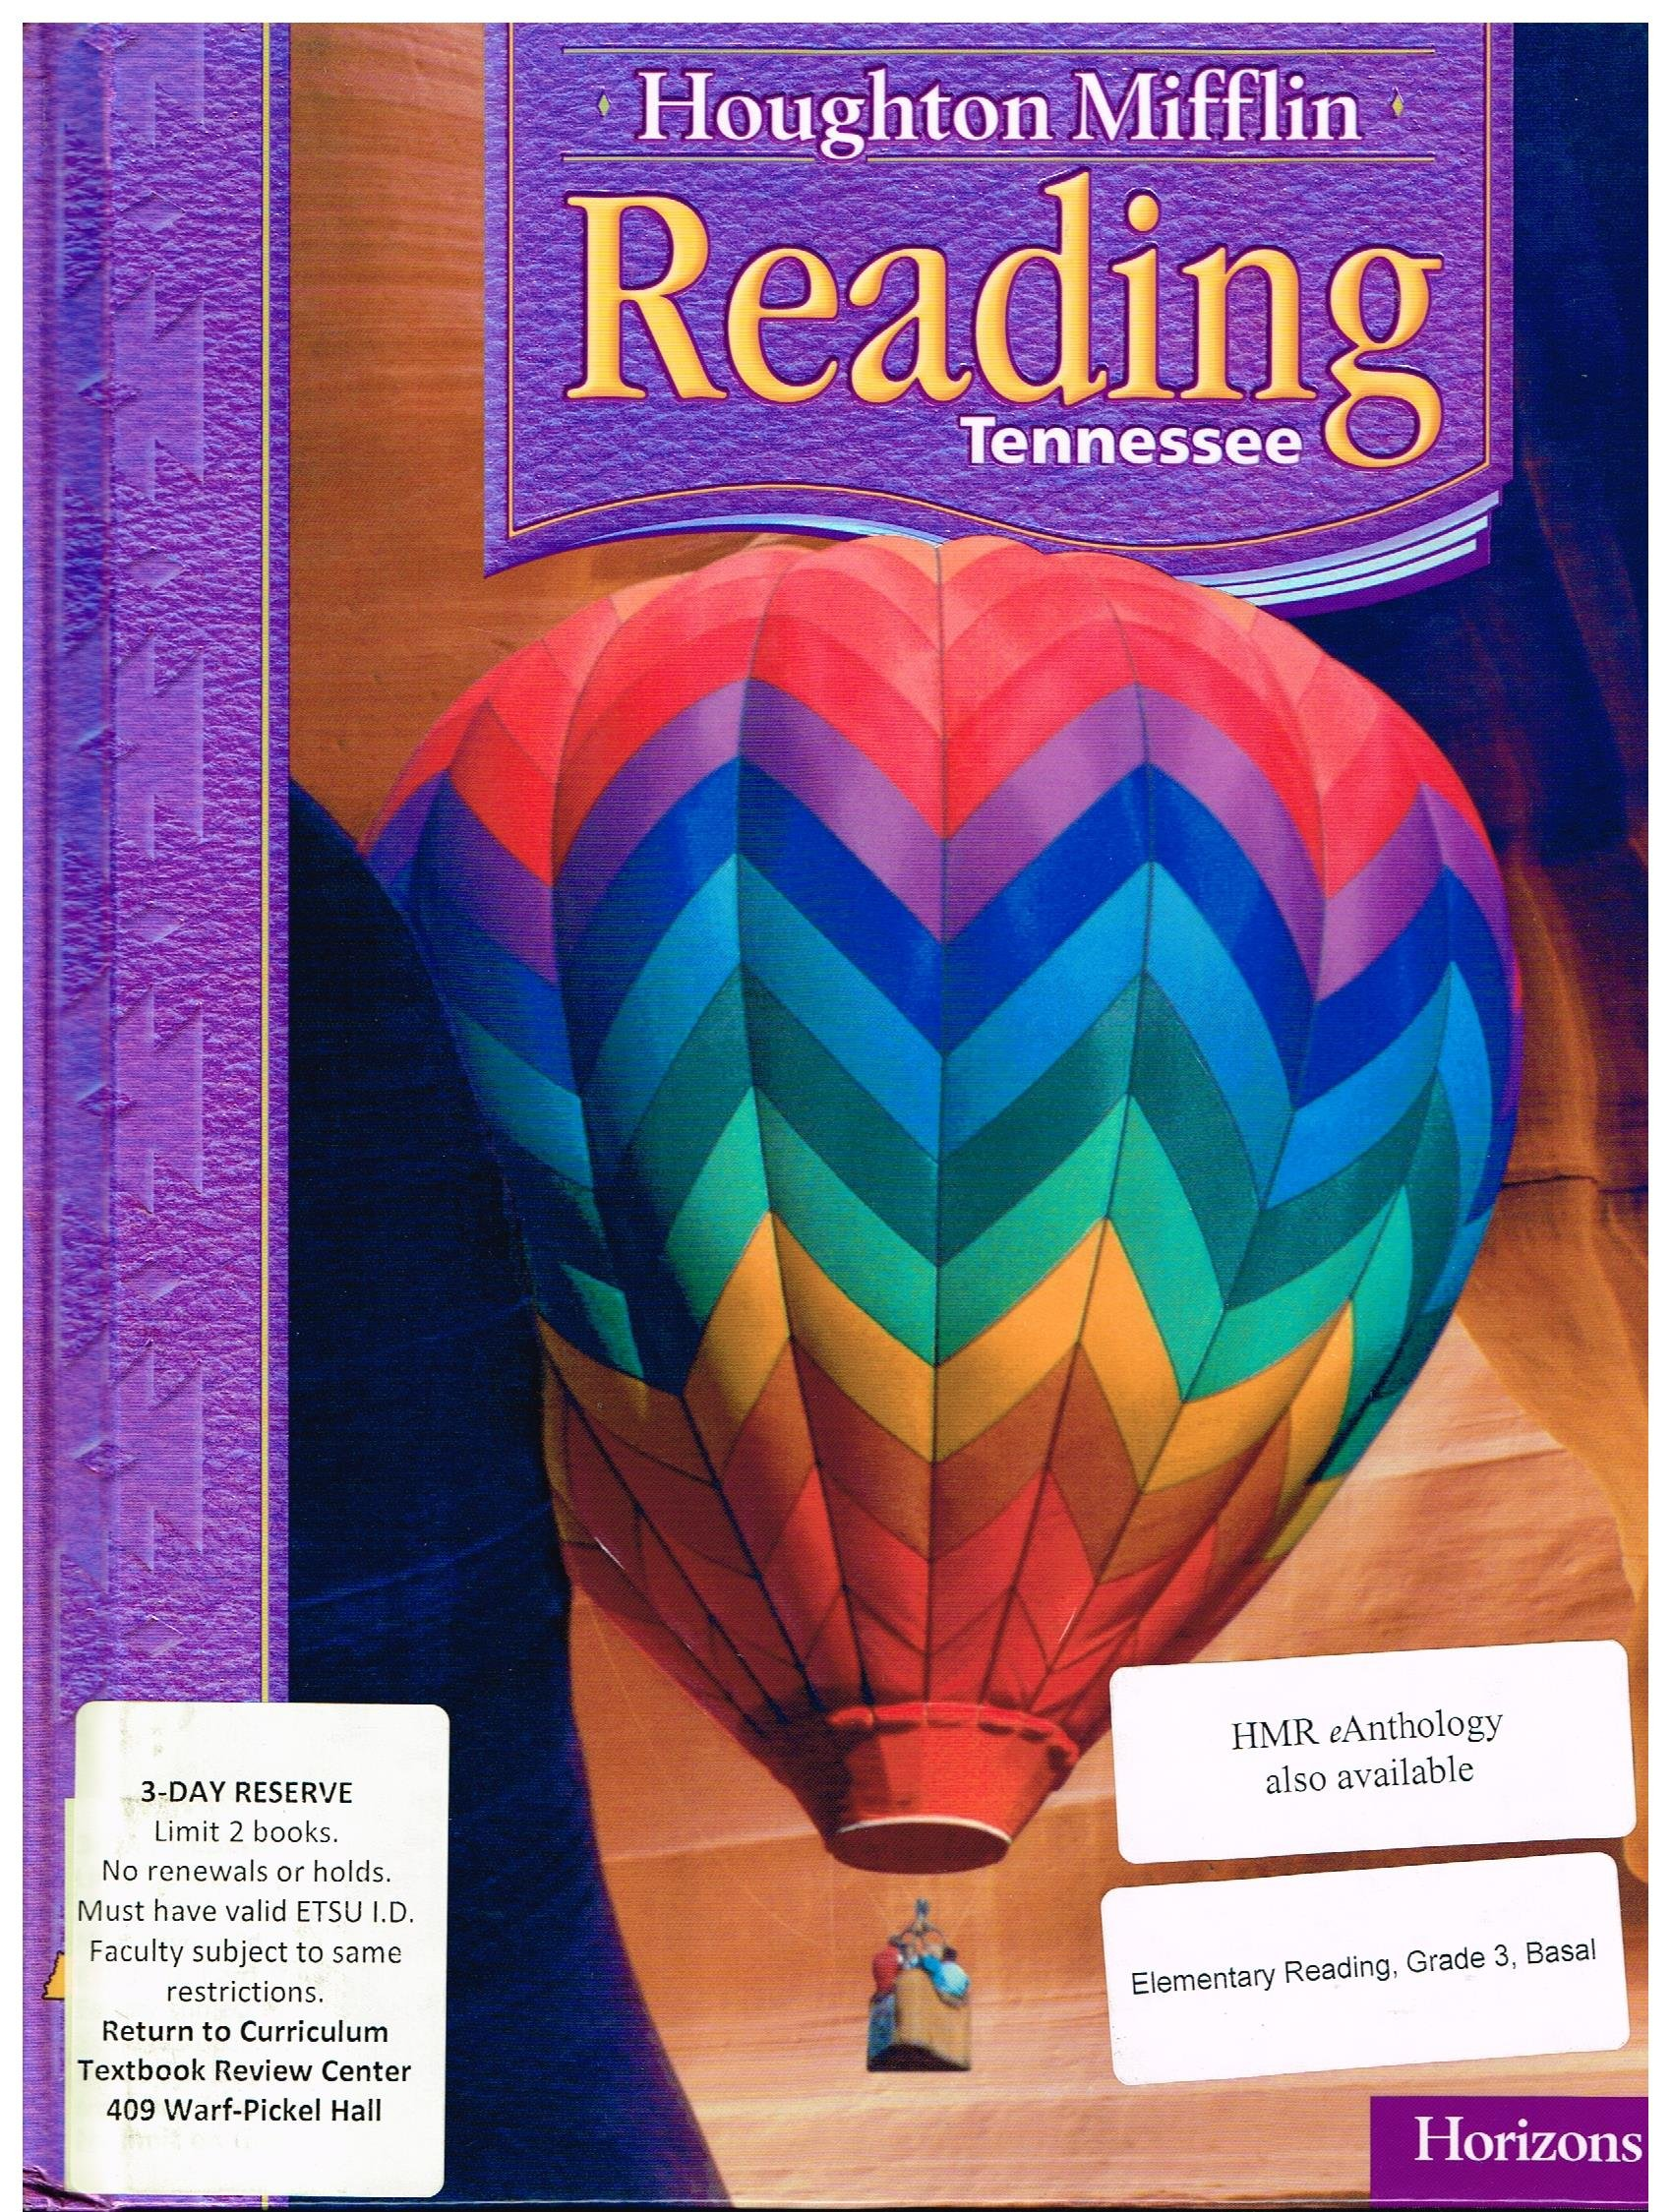 Download Houghton Mifflin Reading Tennessee: Student Edition Level 3.2 Horizons 2007 PDF